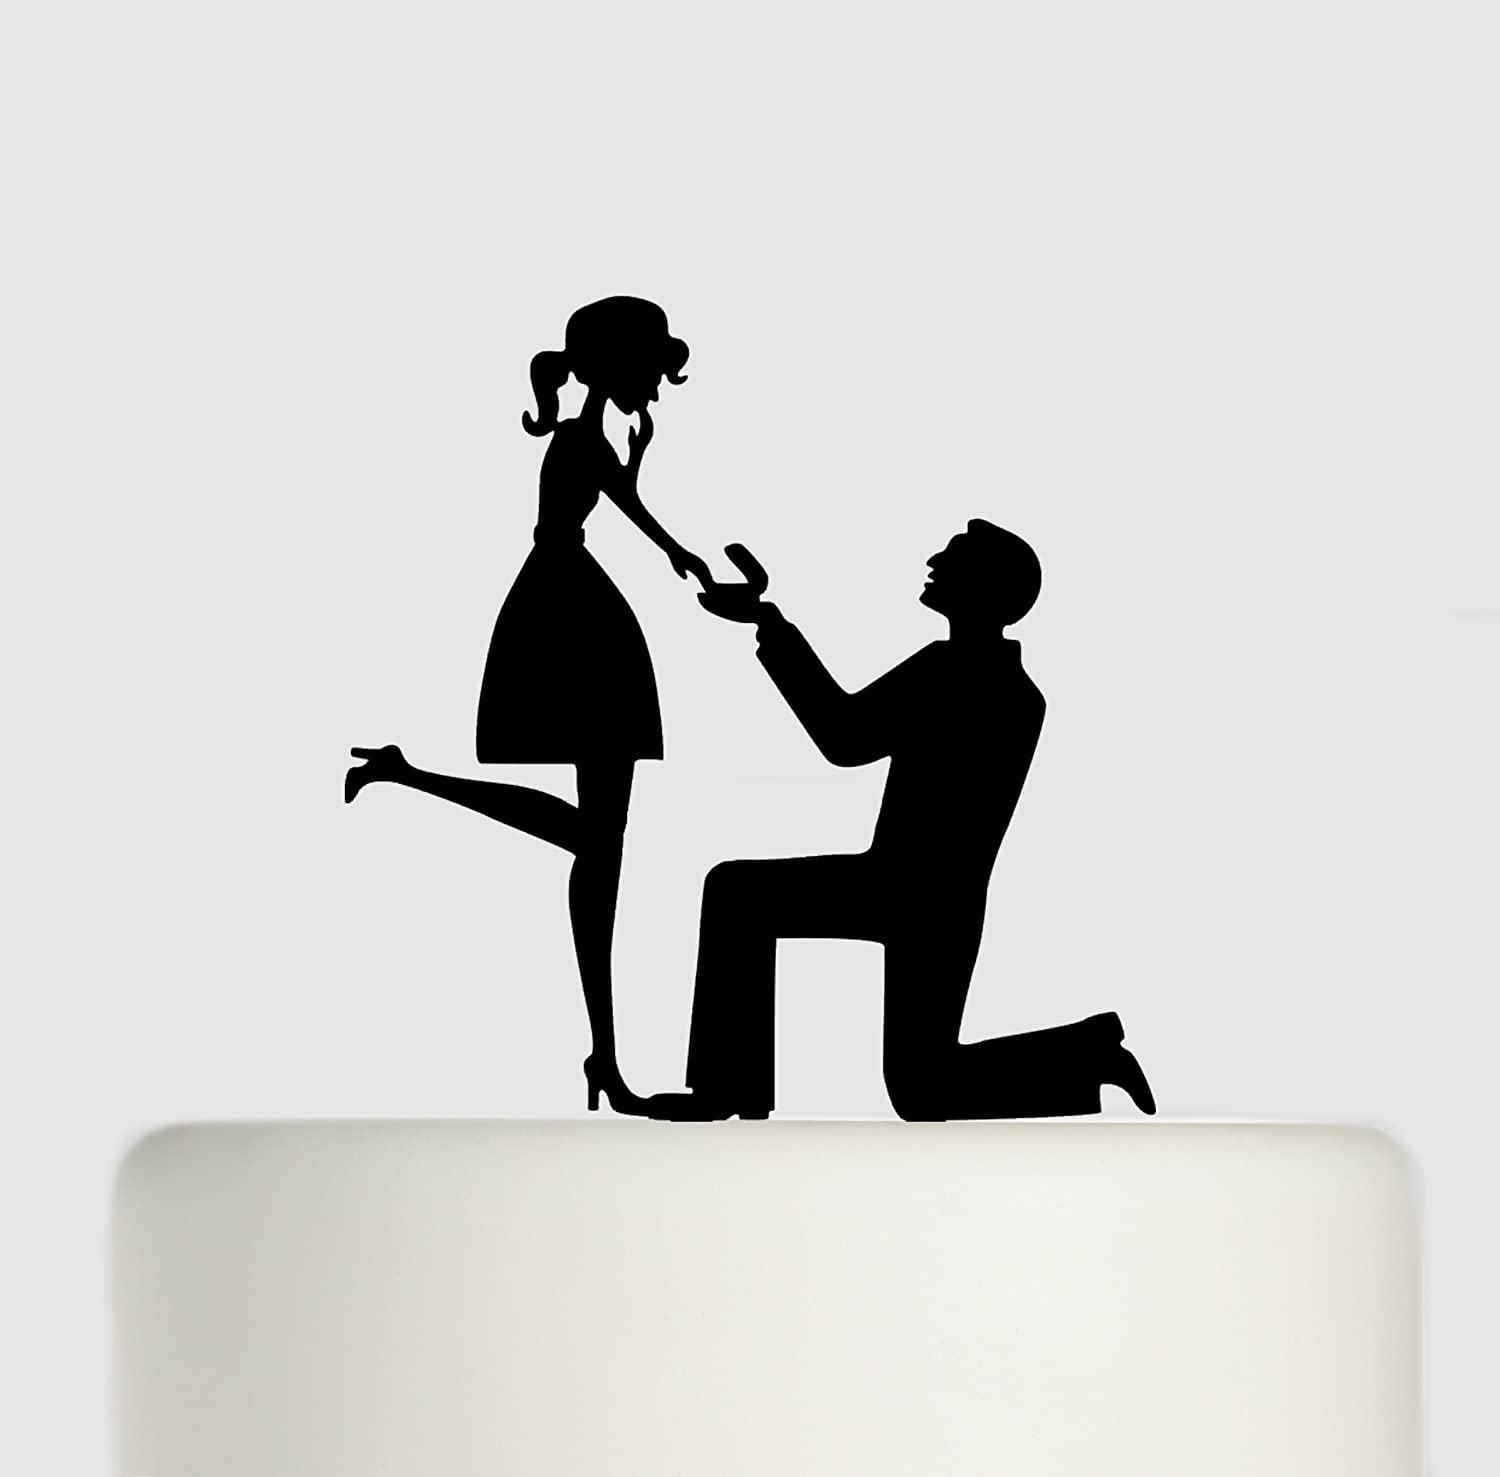 Wedding Cake topper Engaged, Engagement, Getting Married. Ideal handmade wedding cake decoration, wedding party Acrylic cake topper MR & Mrs Cake topper, Available in Gold Mirror, Gold Sparkle, Silver Mirror, Silver Sparkle, Bronze Mirror, Black,Blue, Pink